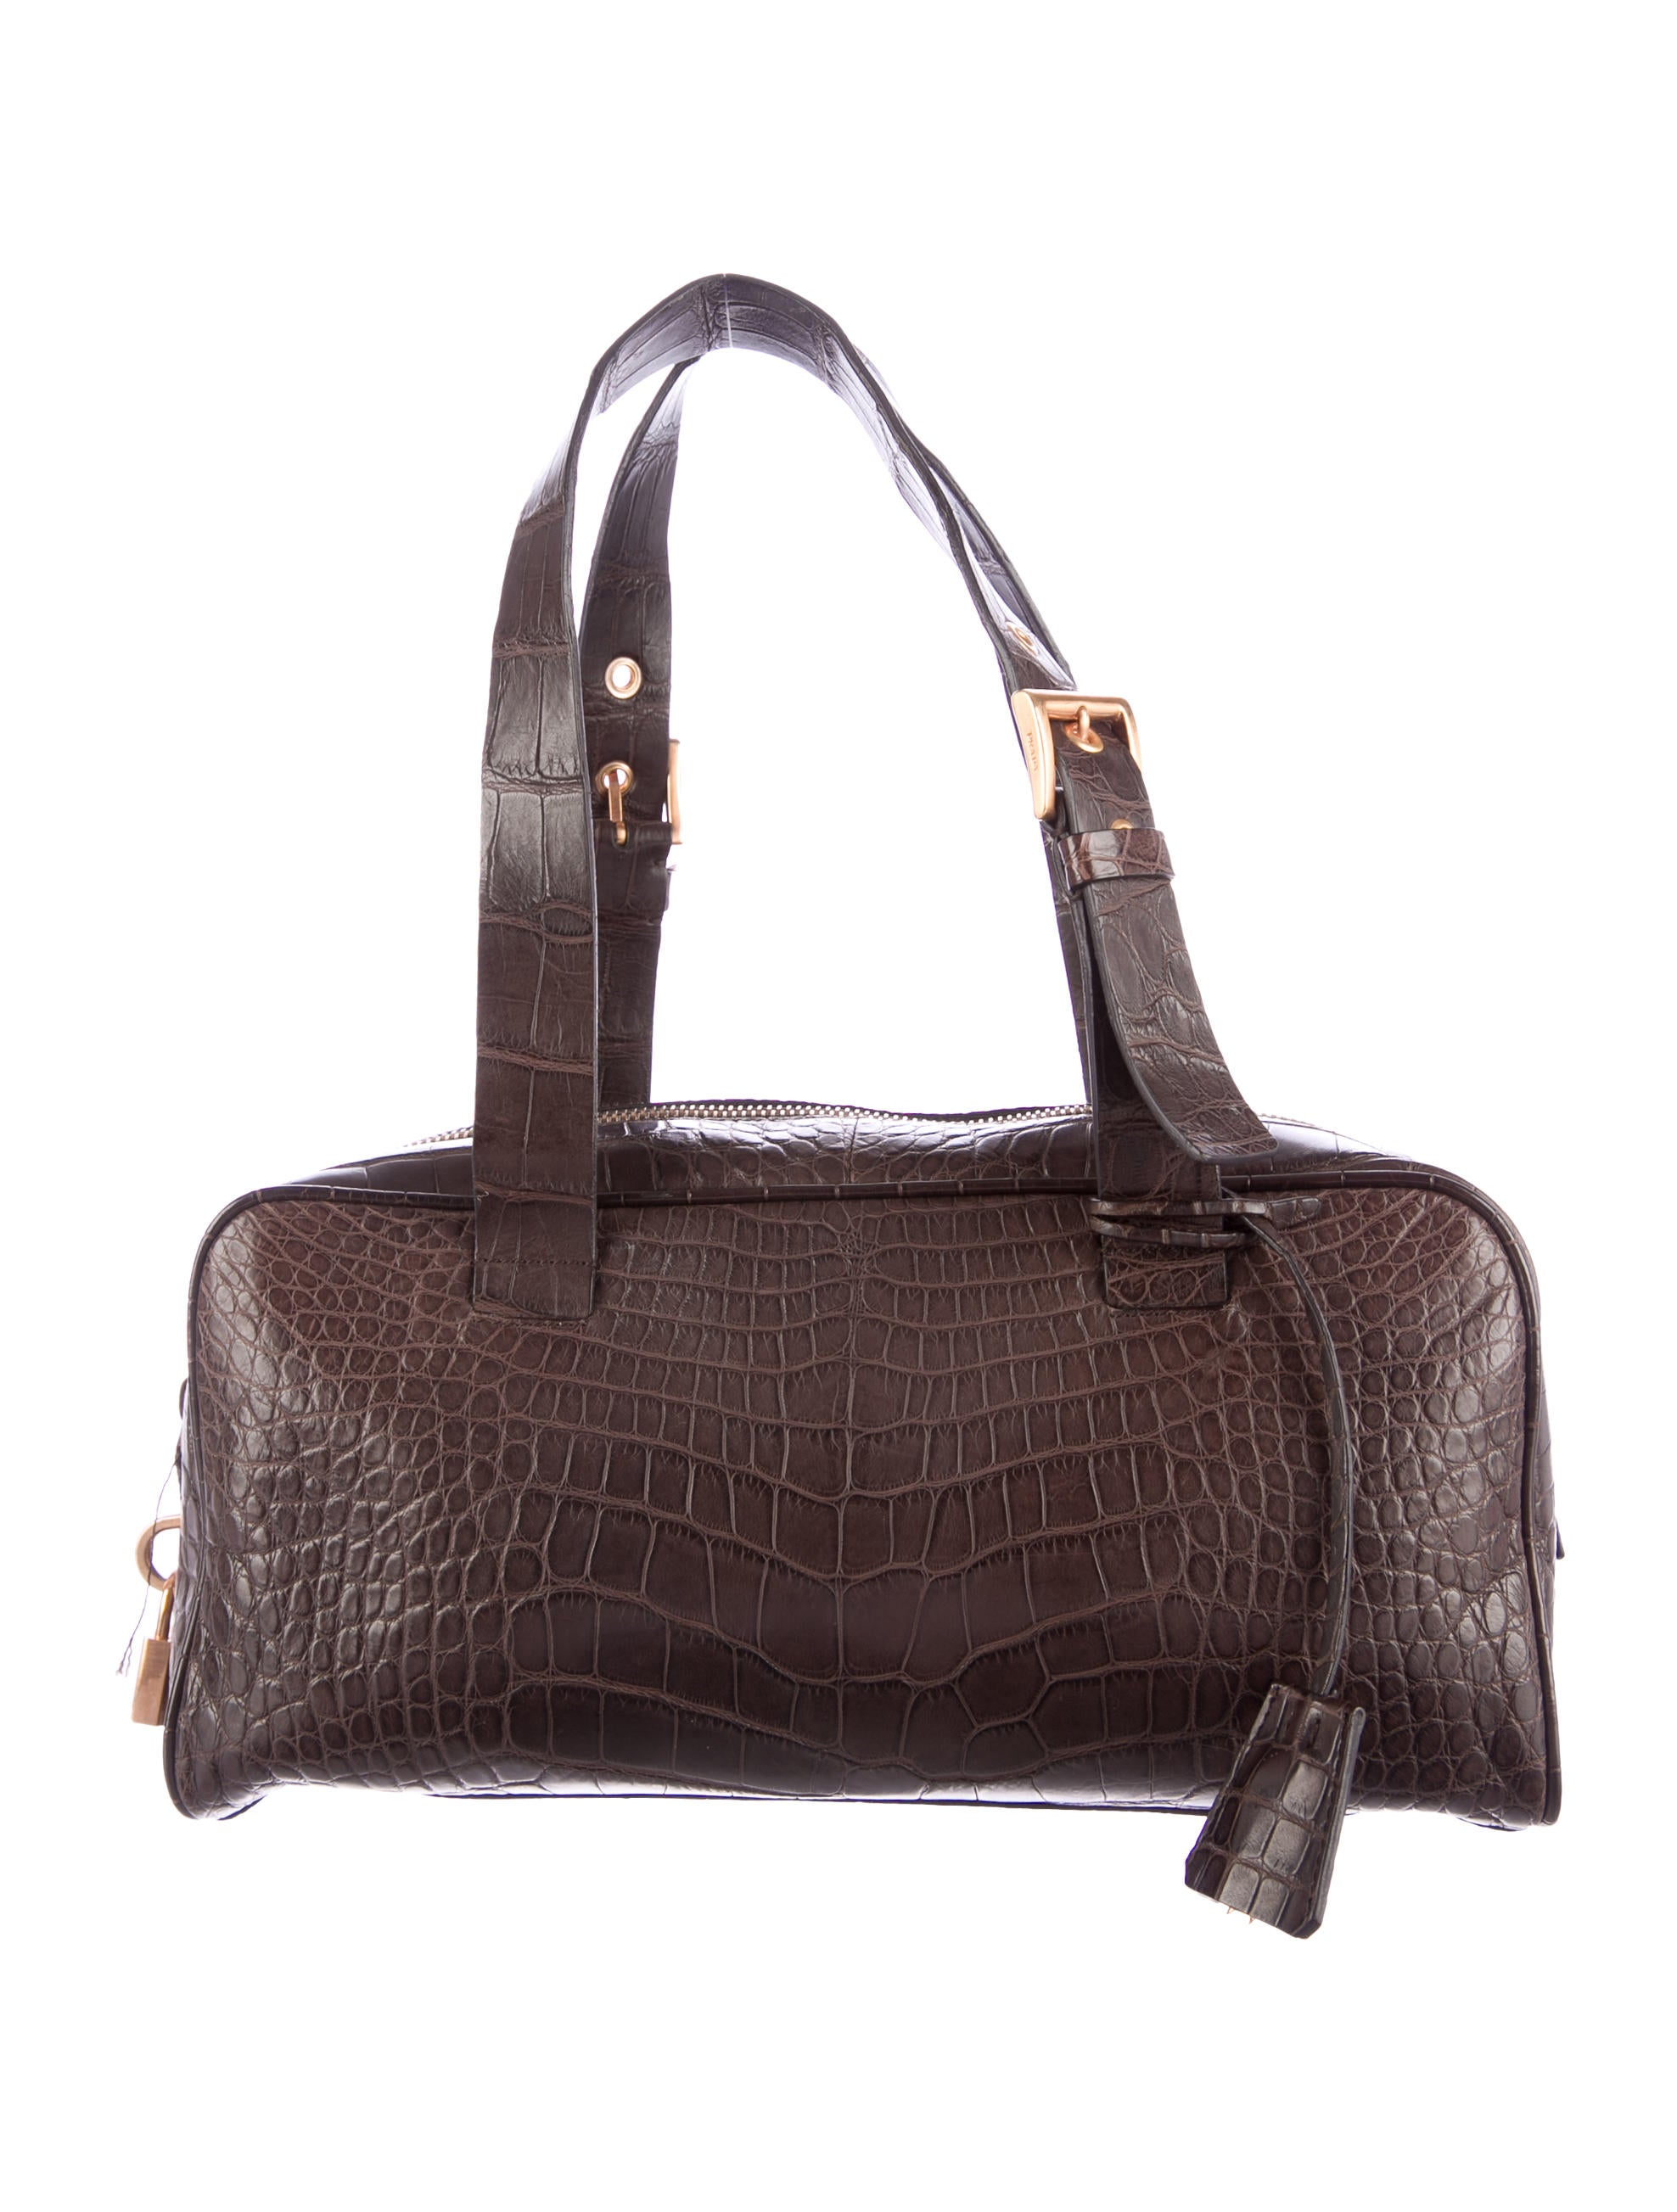 Amazon Fashion has women's handbags priced within reach of any budget. Choose from designer and contemporary labels as well as everyday fashion favorites, including Sam Edelman, Brahmin, Tommy Hilfiger, Cole Haan, Calvin Klein, The Sak, FRYE, Lacoste, Vera Bradley, Baggallini, Kipling, Anne Klein, Sakroots, GUESS, and more.